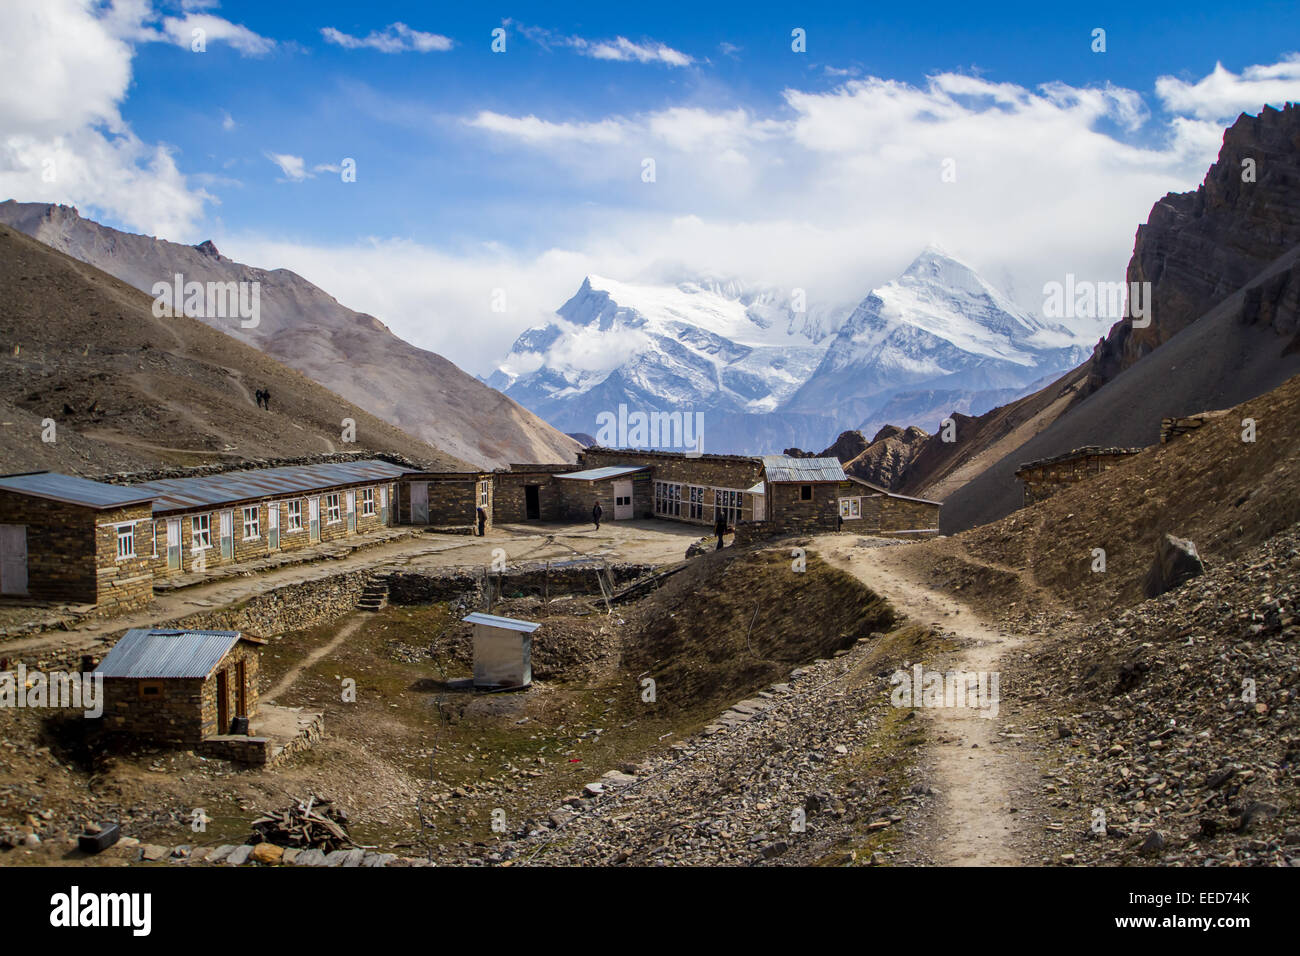 This Is High Camp On The Annapurna Circuit At An Altitude Of - Altitude here